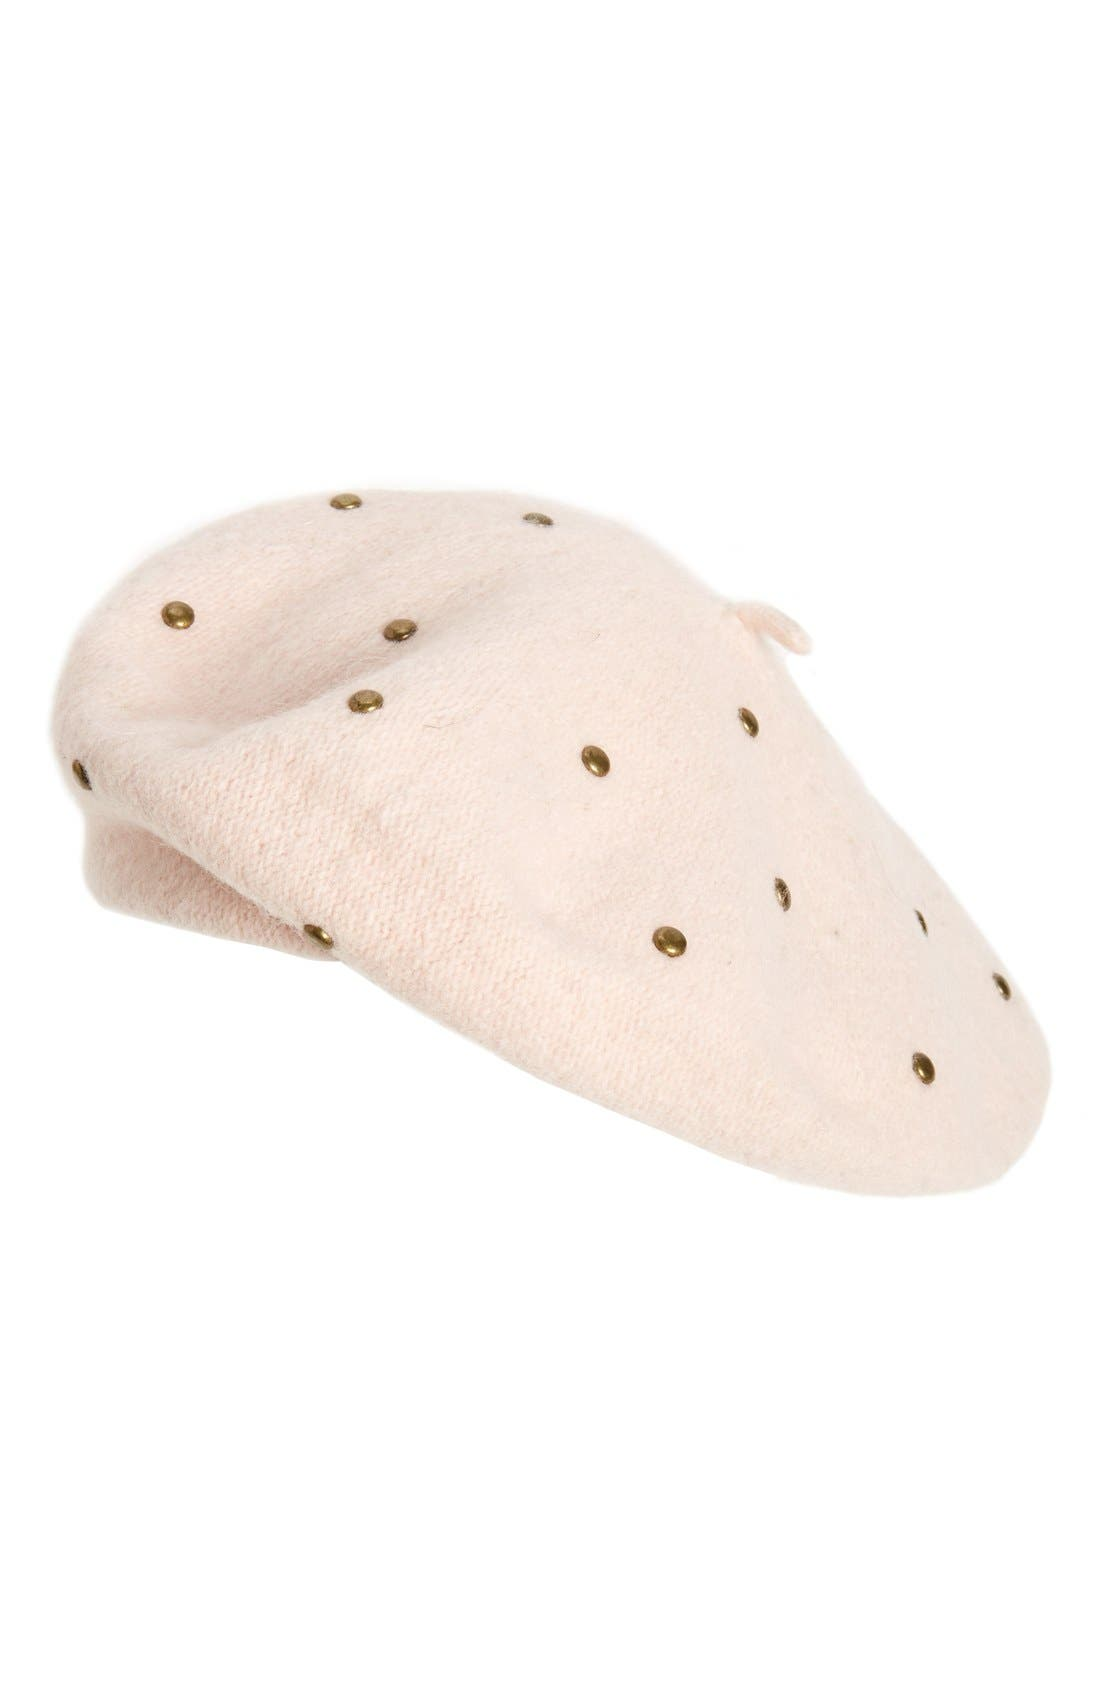 Alternate Image 1 Selected - Sole Society Studded Beret